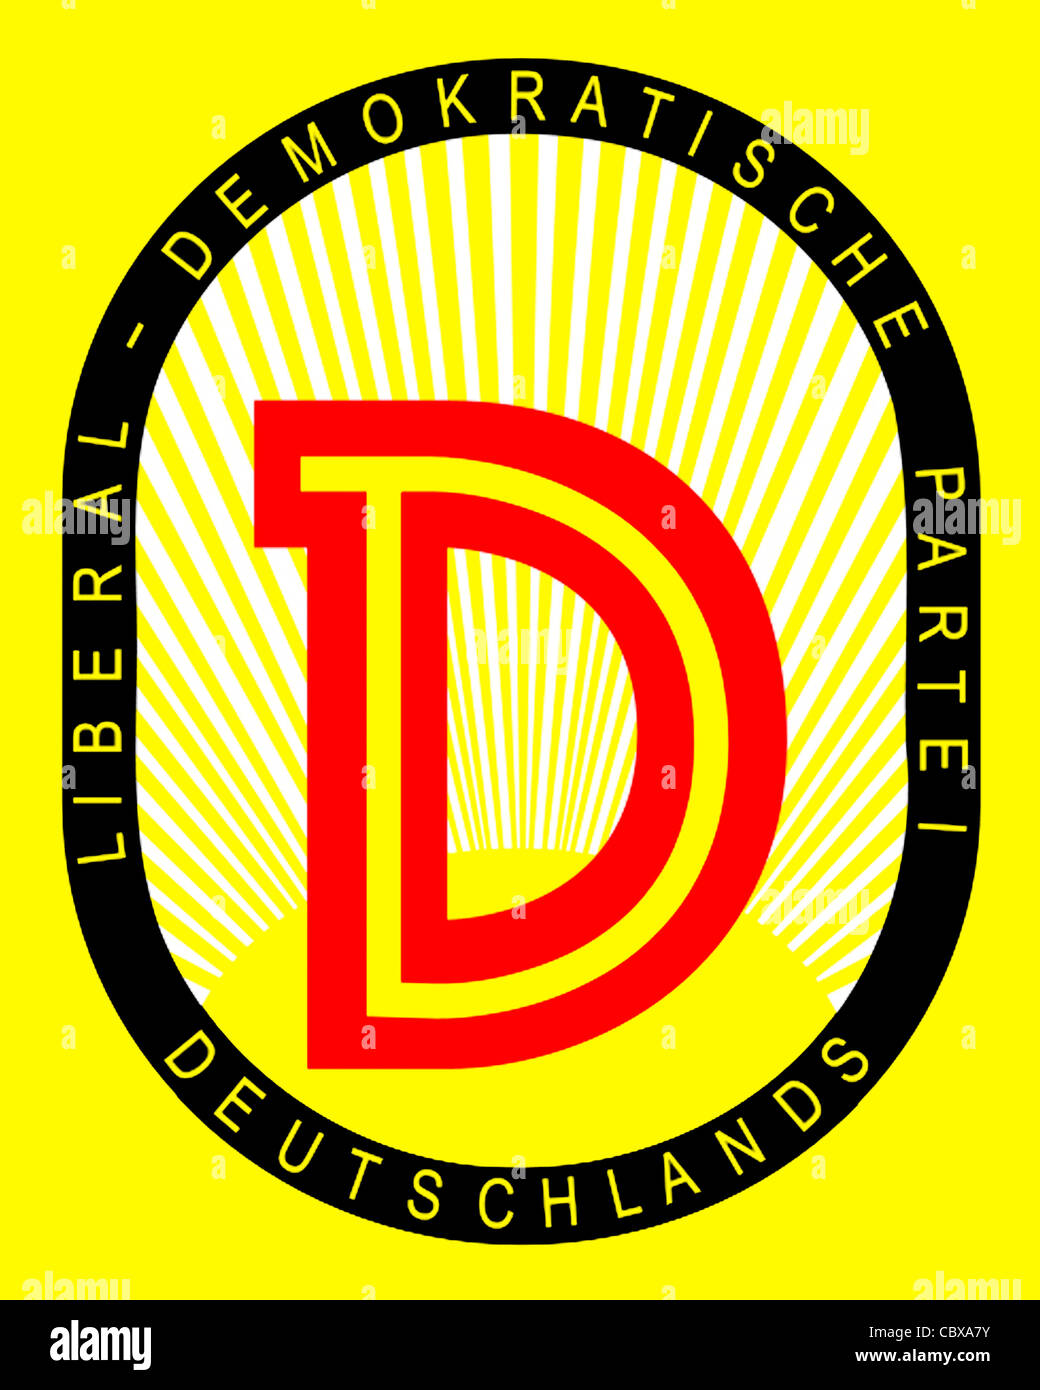 Logo of the Liberal Democratic Party of Germany LDPD of the GDR. - Stock Image